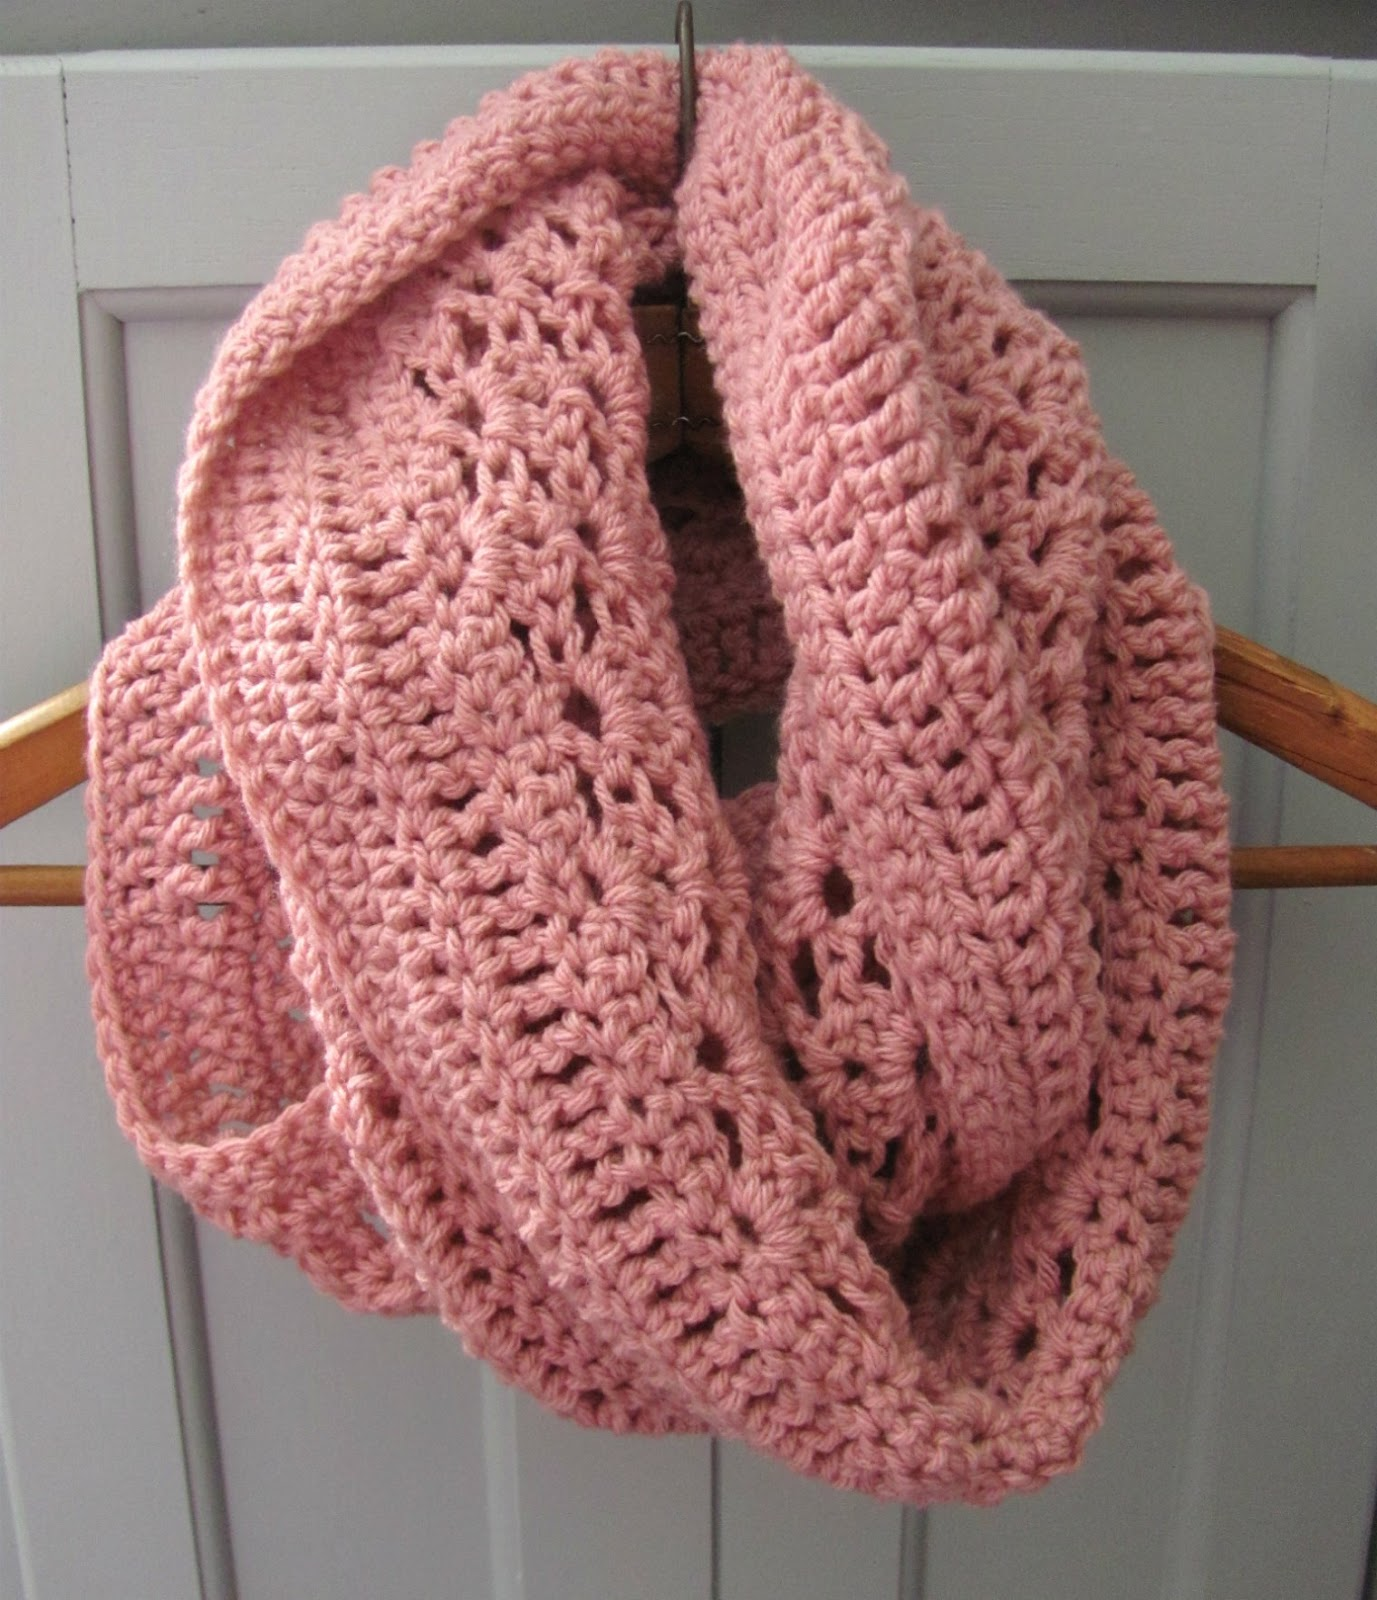 Crochet Scarf Pattern With Pictures : half double: Lacy Shells Scarf